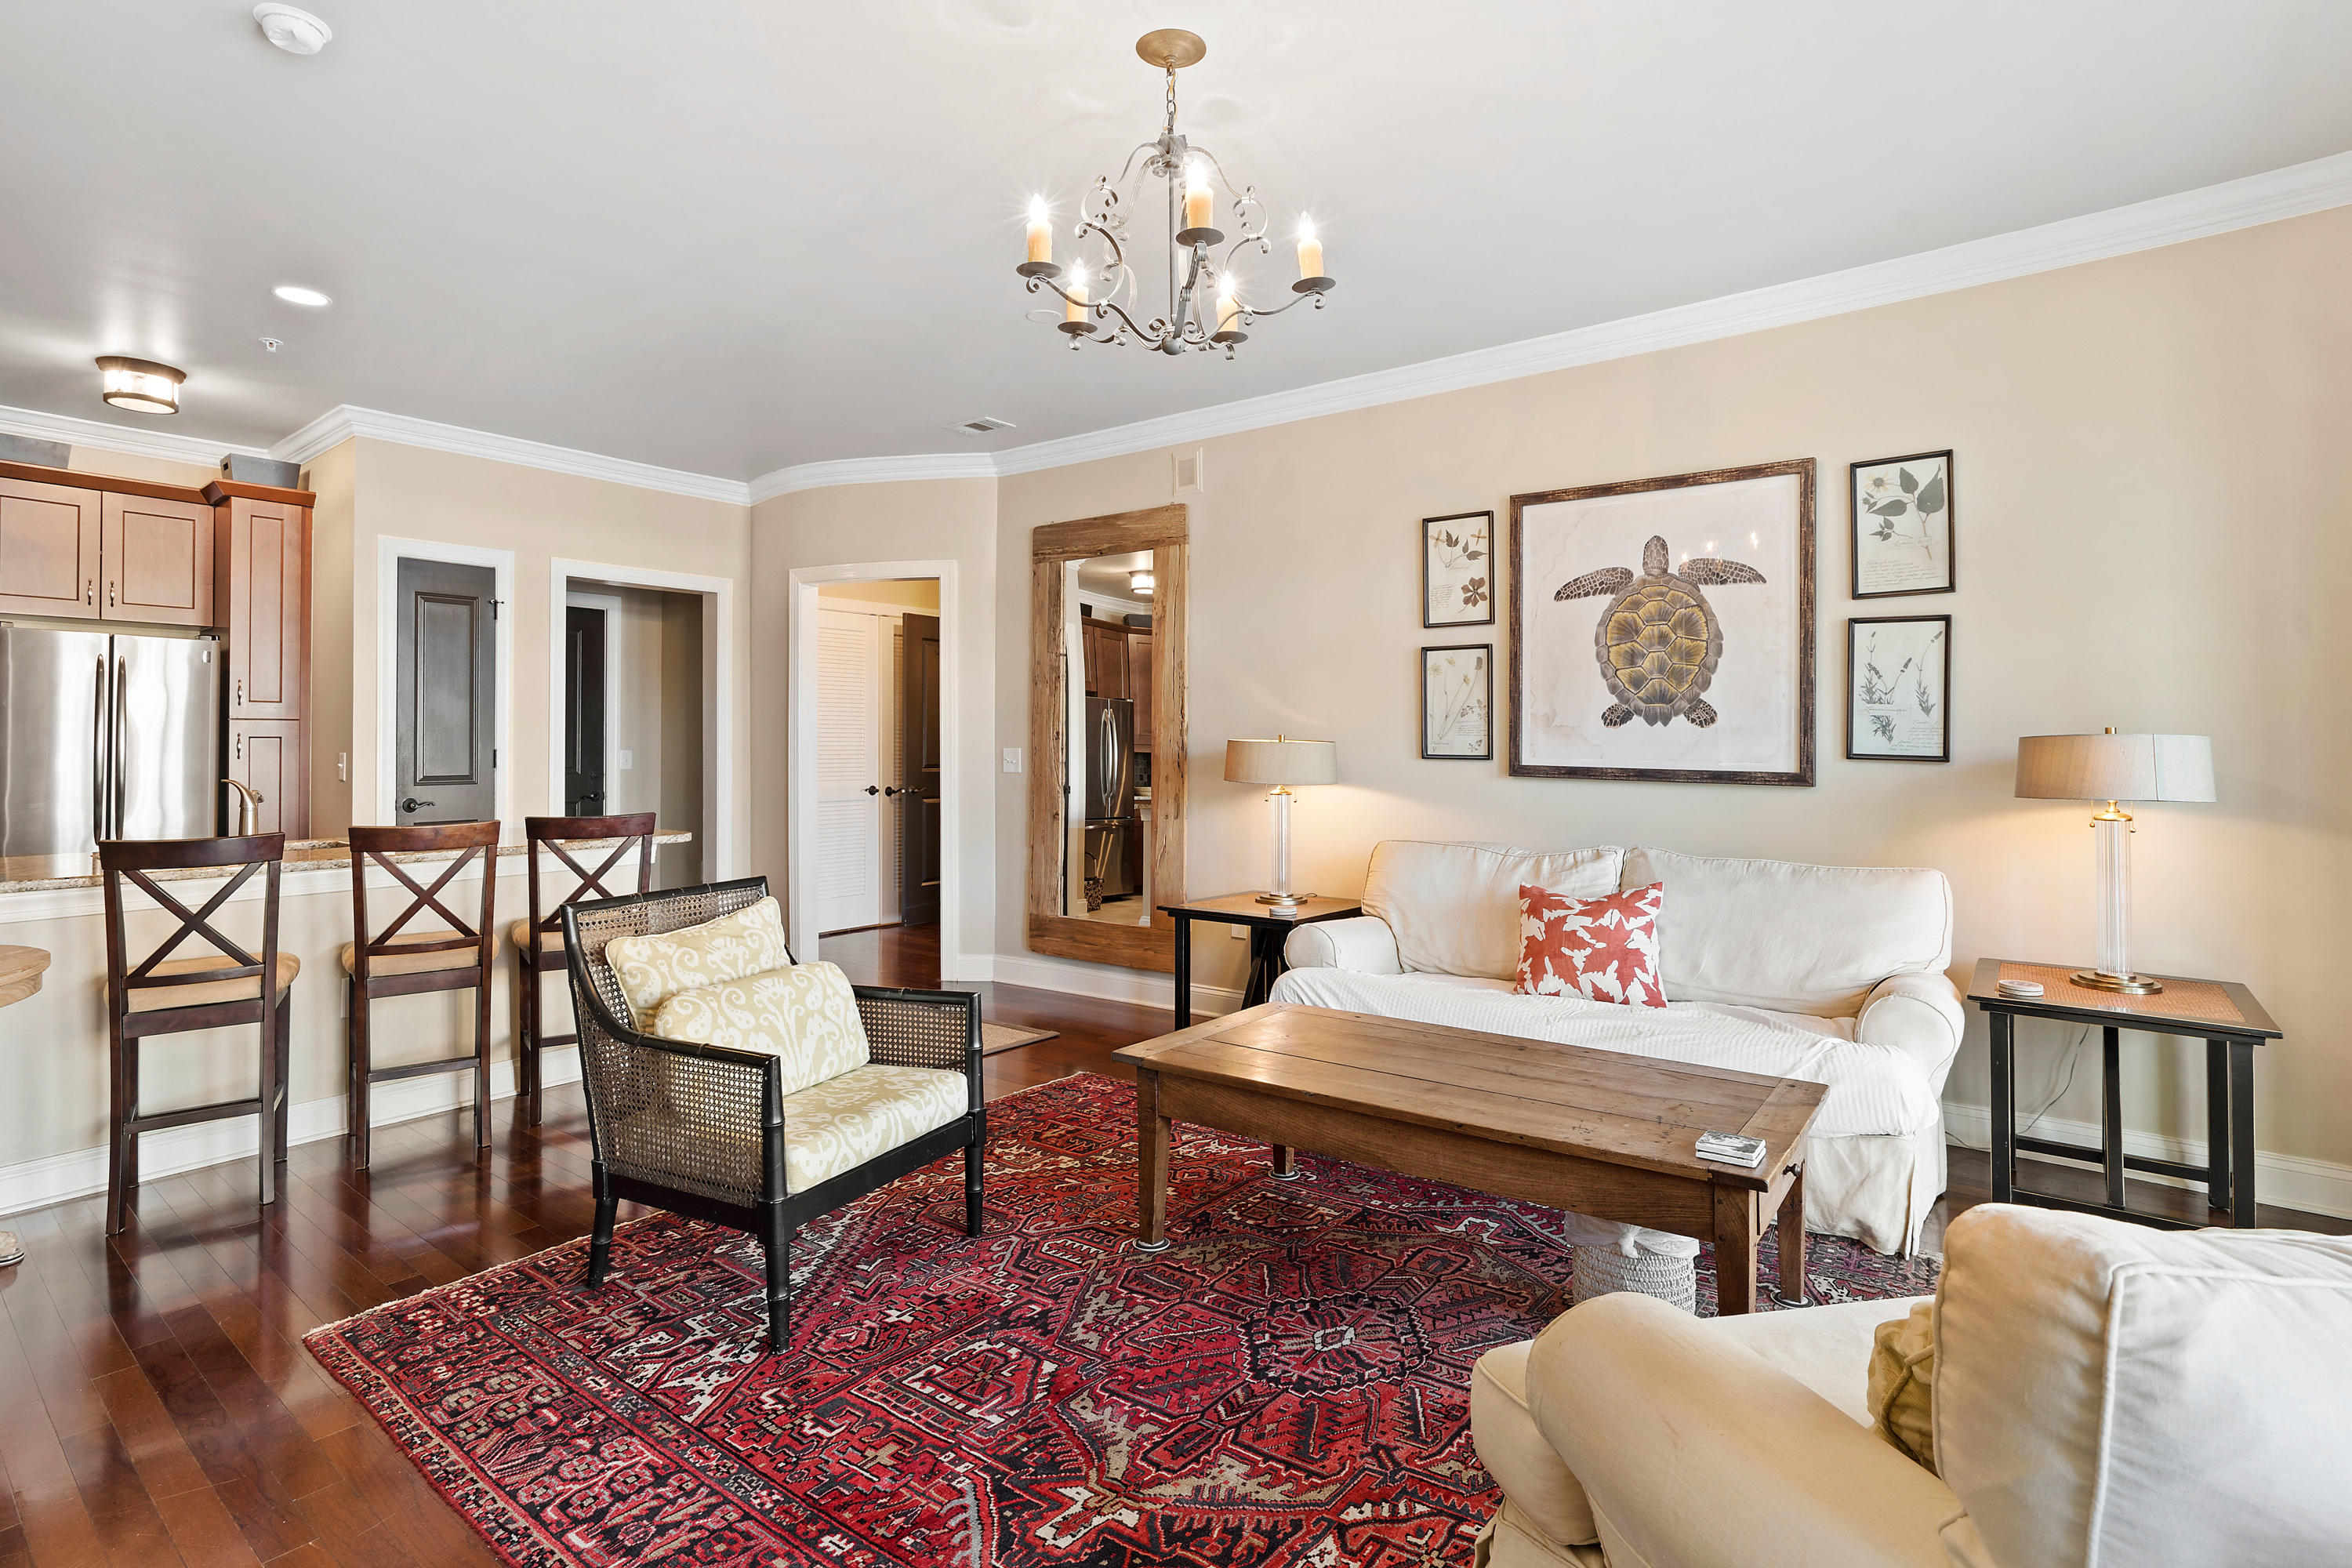 George And Society Condos For Sale - 21 George, Charleston, SC - 15